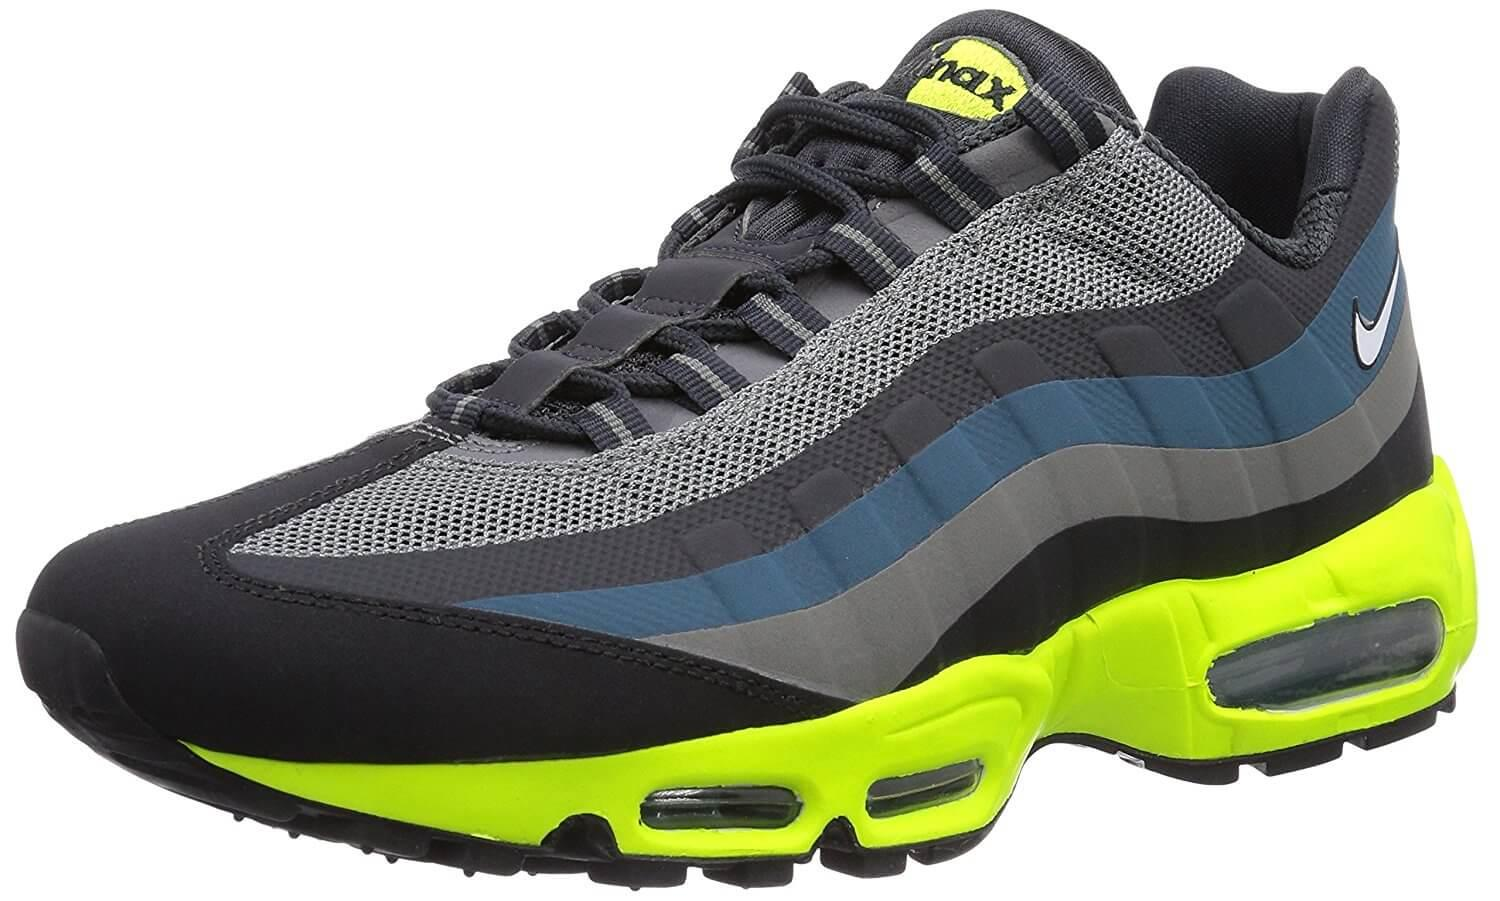 sale retailer a1bd5 c4b43 Nike Air Max 95 Reviewed - To Buy or Not in May 2019